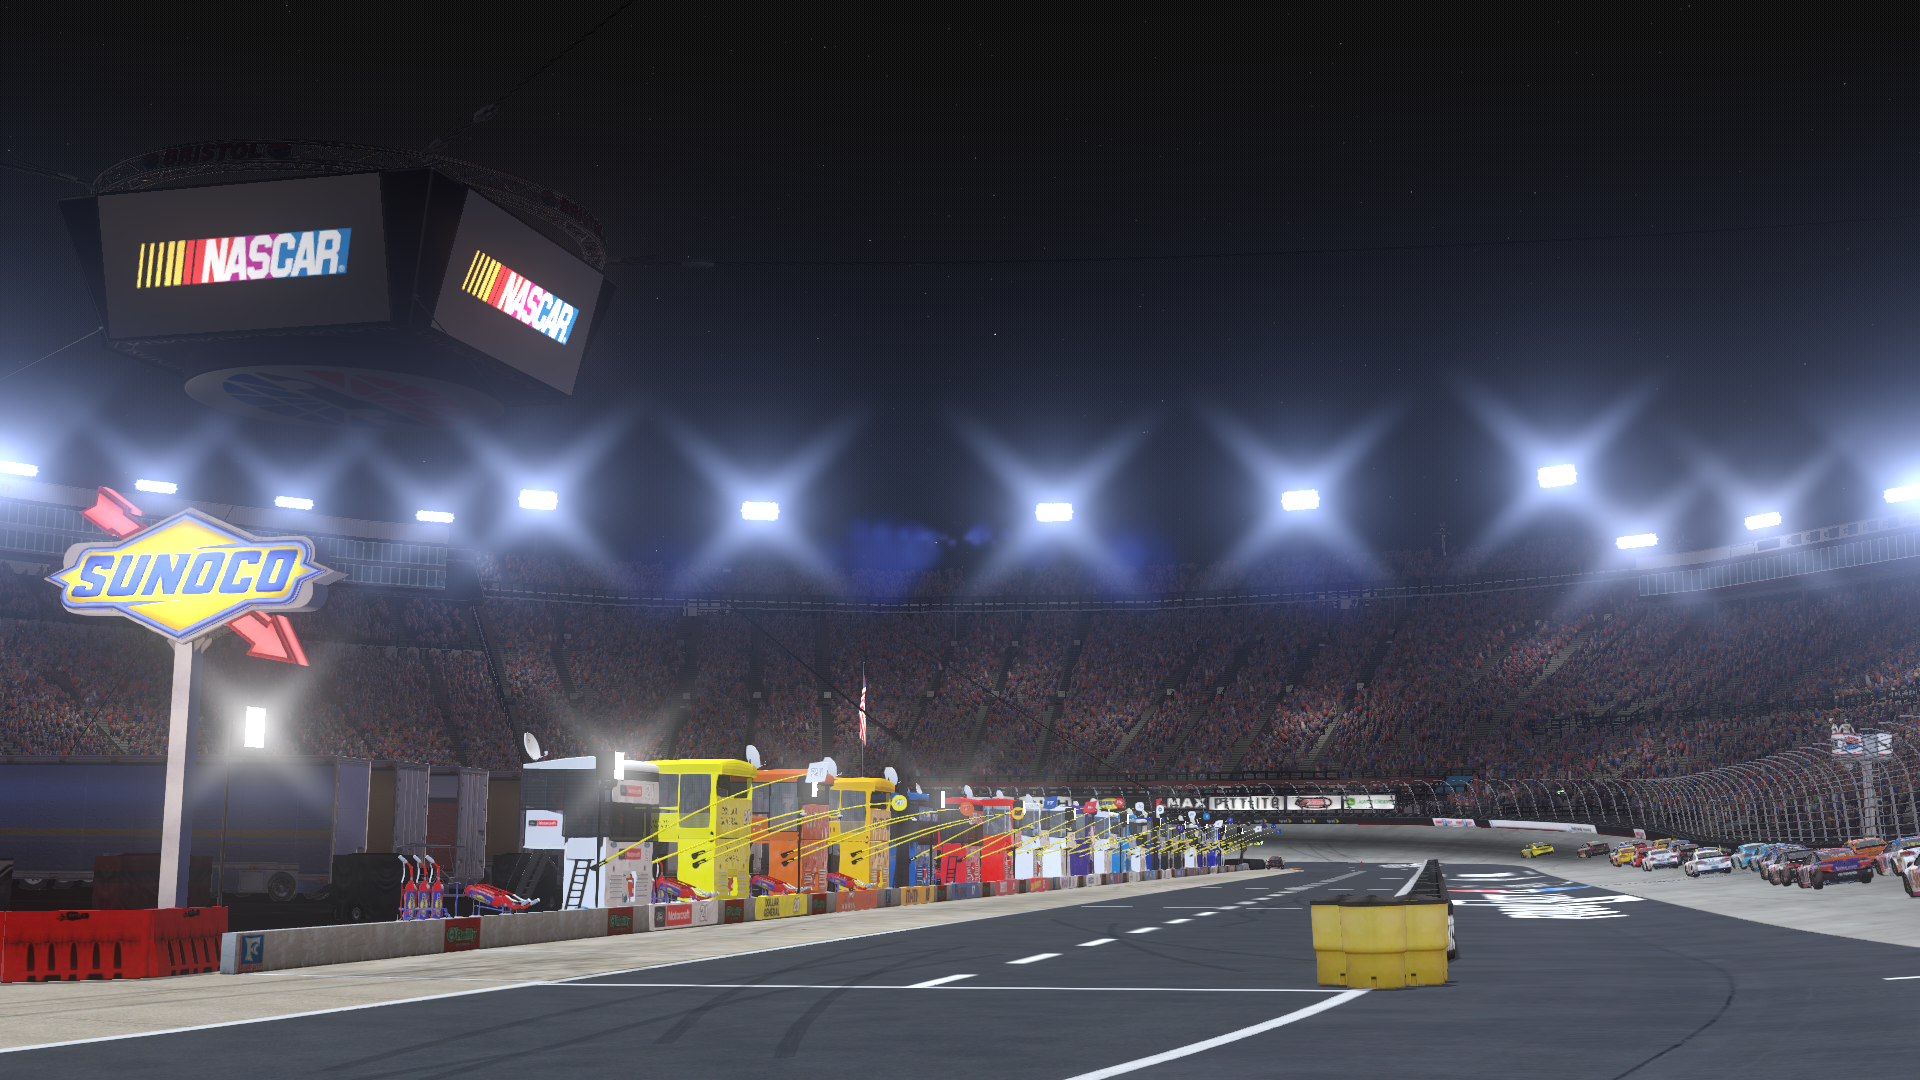 NASCAR Heat Evolution is the first authentic NASCAR game on Xbox One and PlayStation 4. Join the biggest drivers and the most iconic NASCAR Sprint Cup Series tracks. Or take the race online with up to 40 other players, a first for console games.